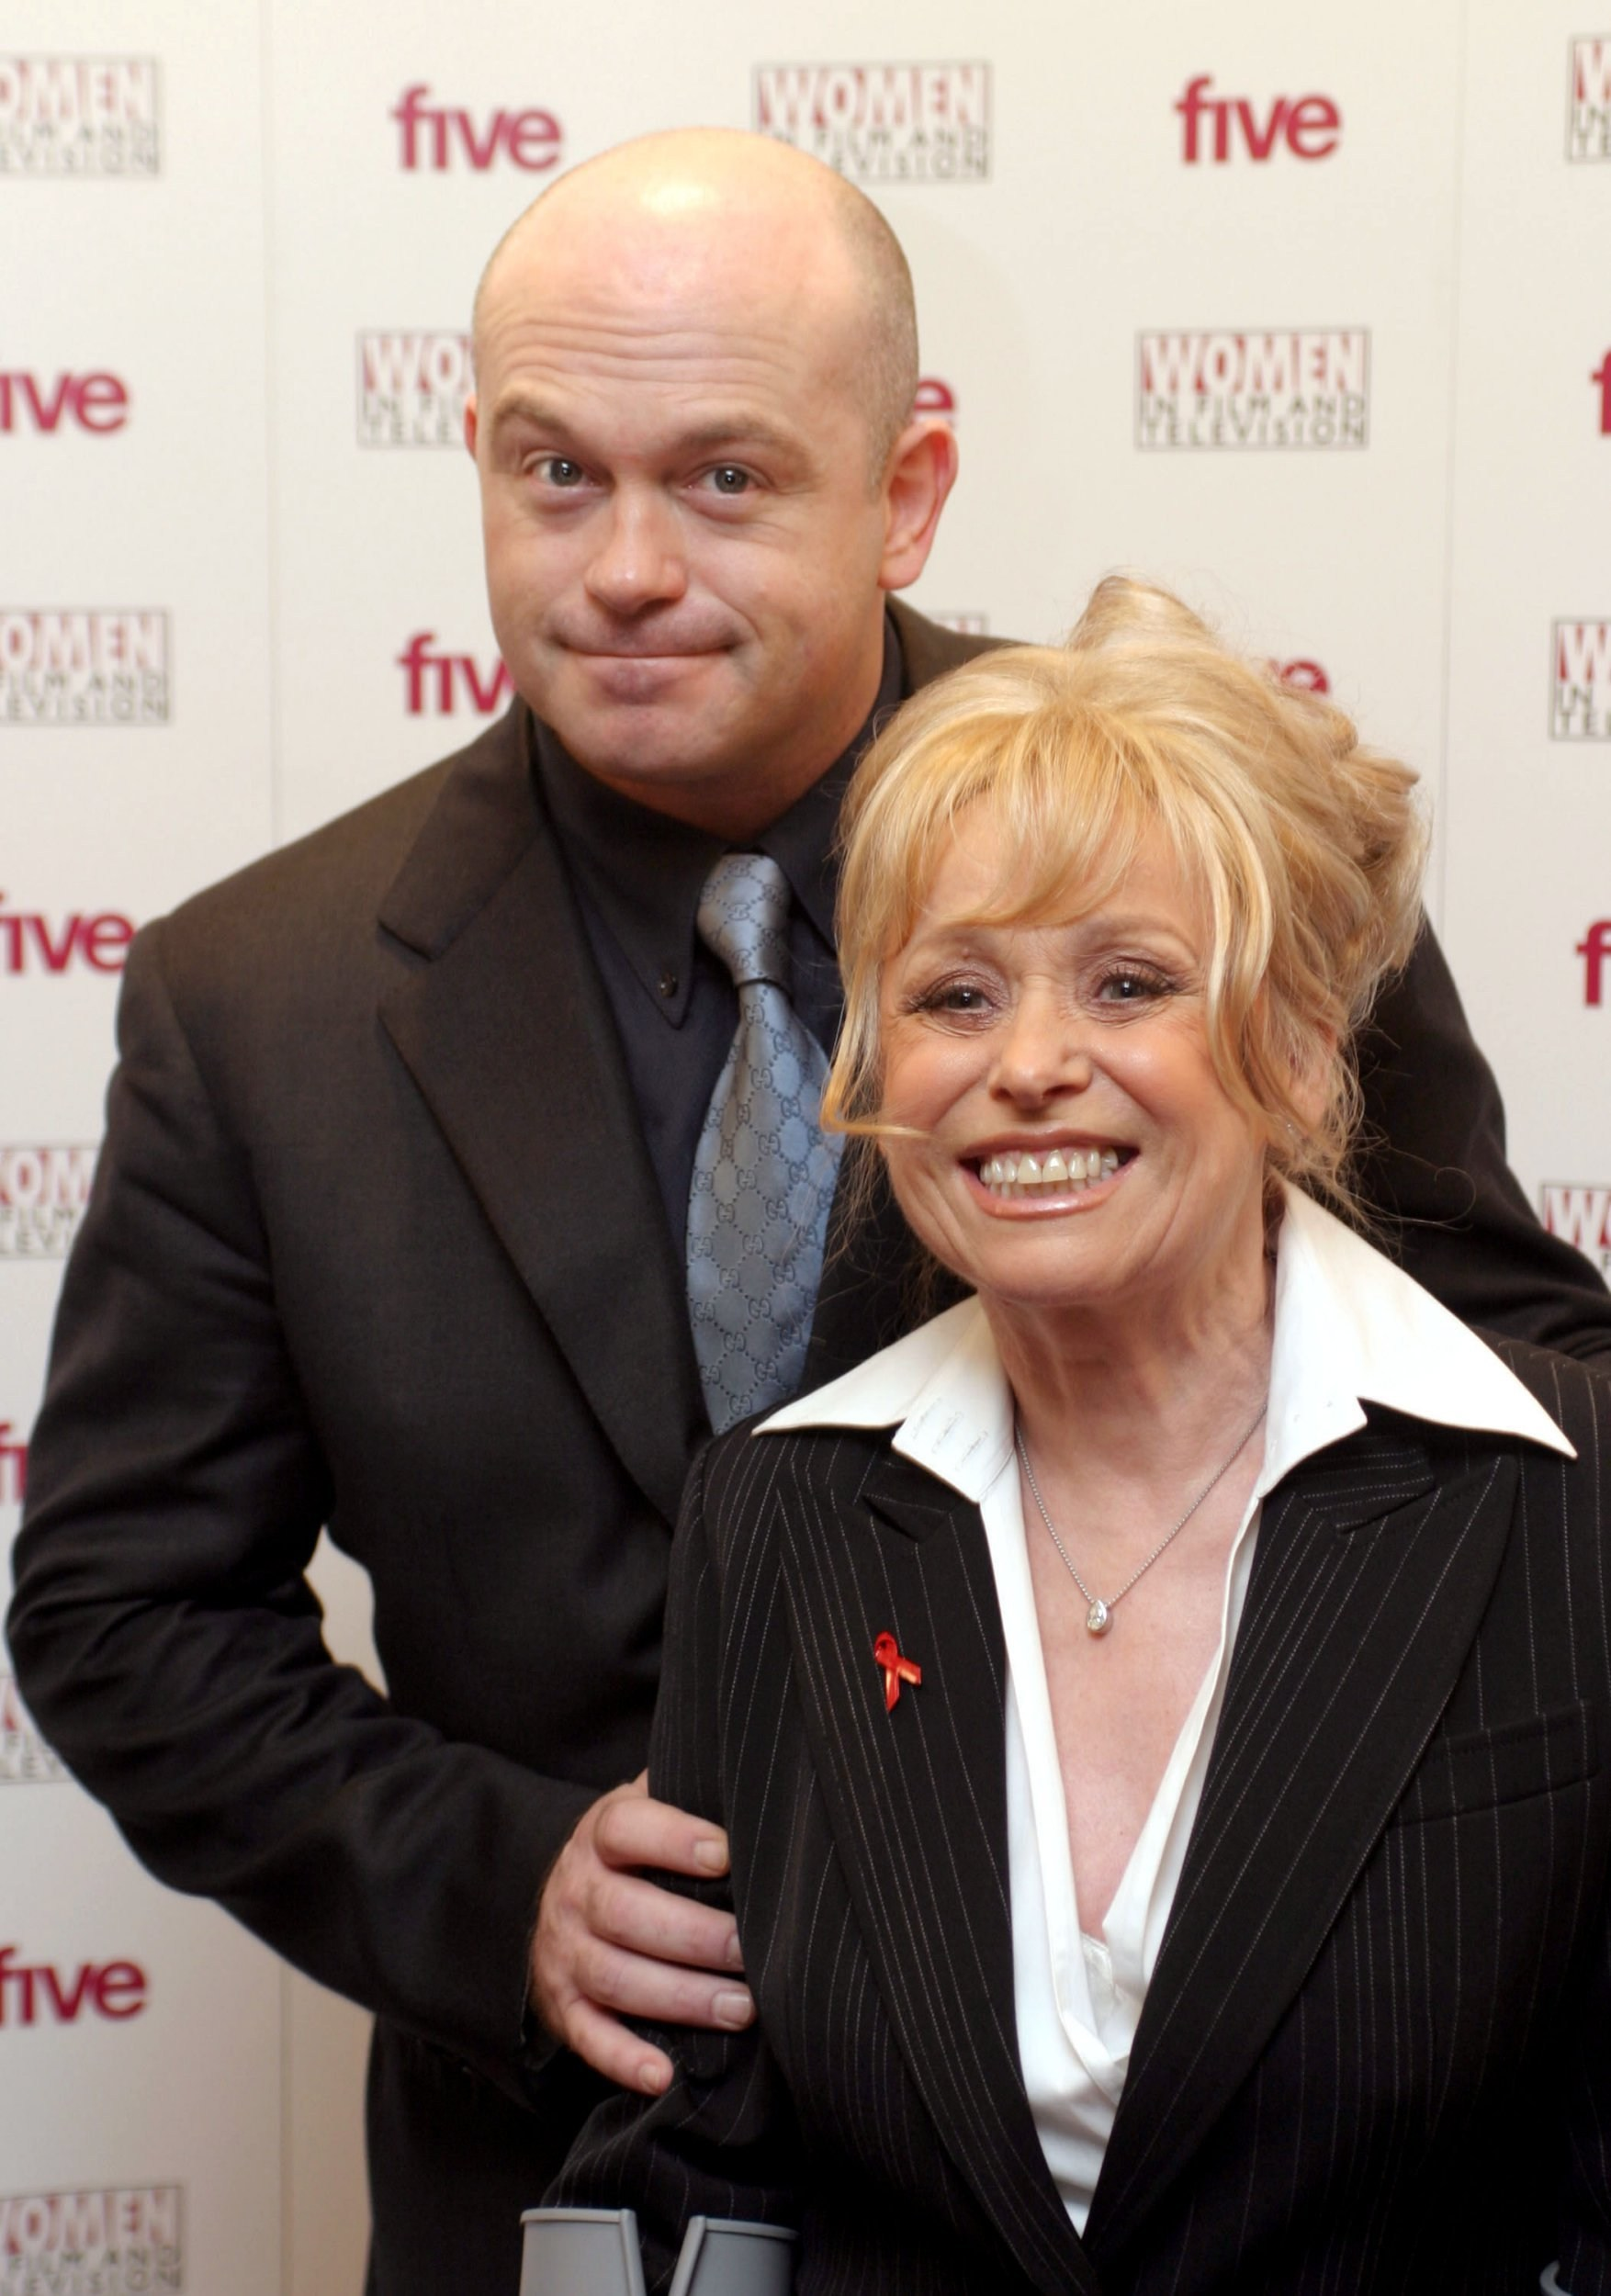 Scott Mitchell 'can't imagine losing' Barbara Windsor as he speaks to Ross Kemp in video